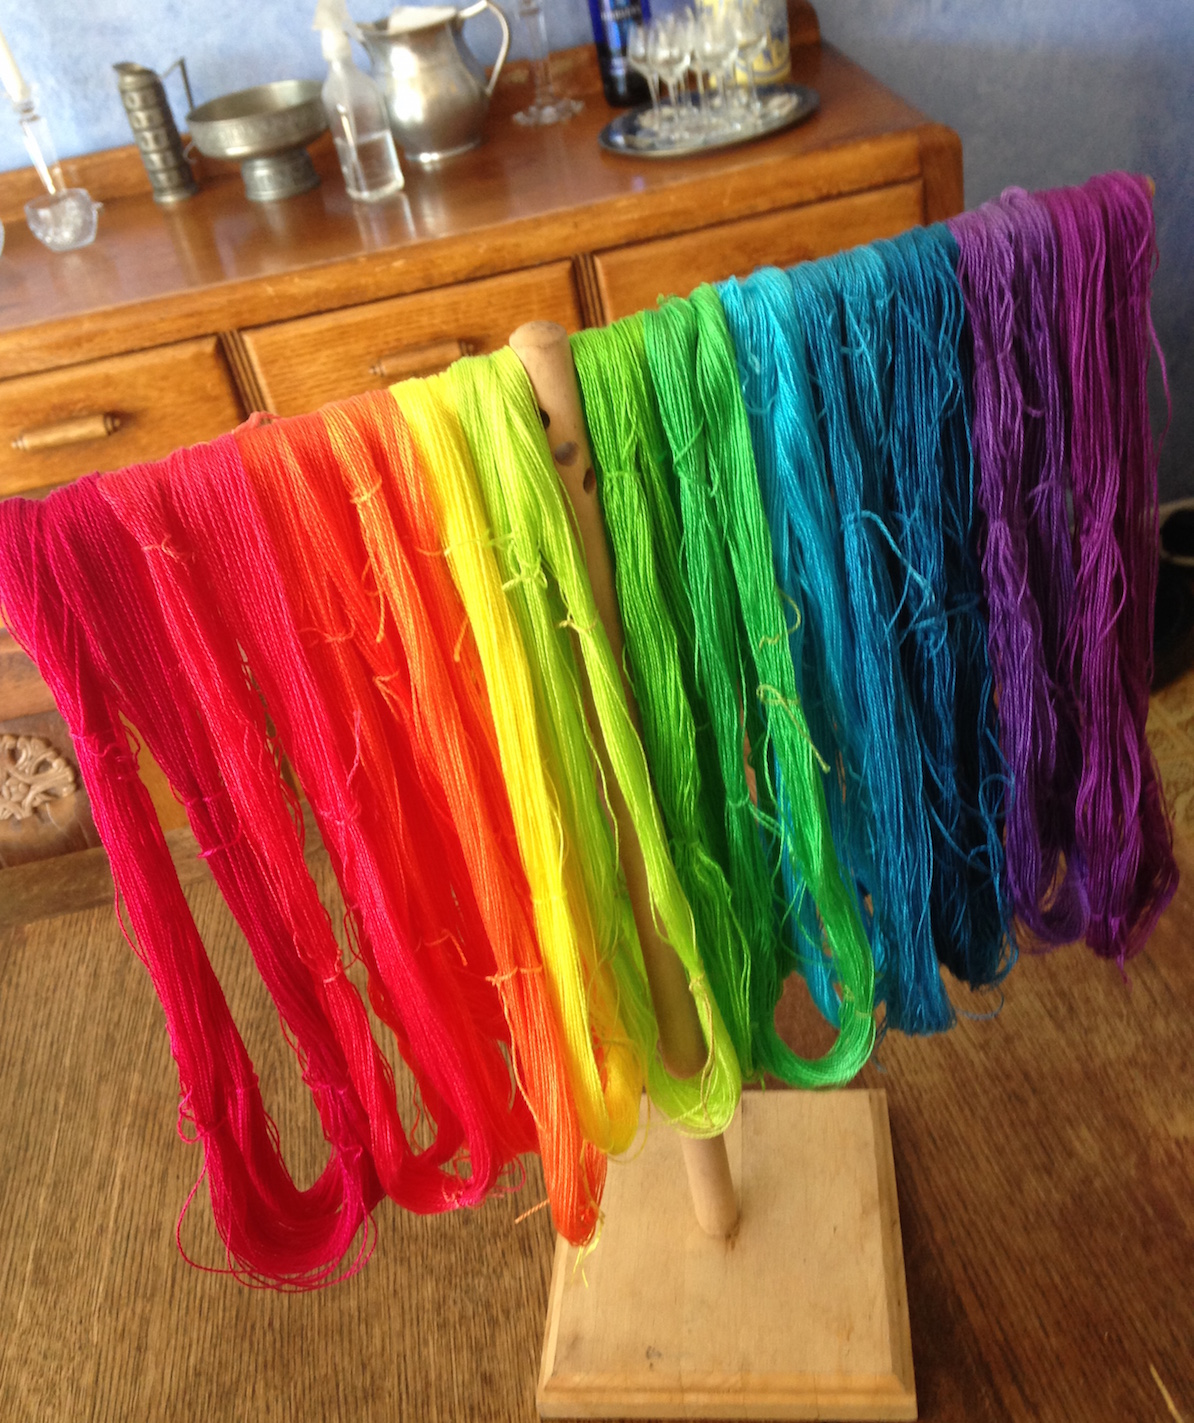 A rainbow of hand-dyed yarn for my next weaving project.